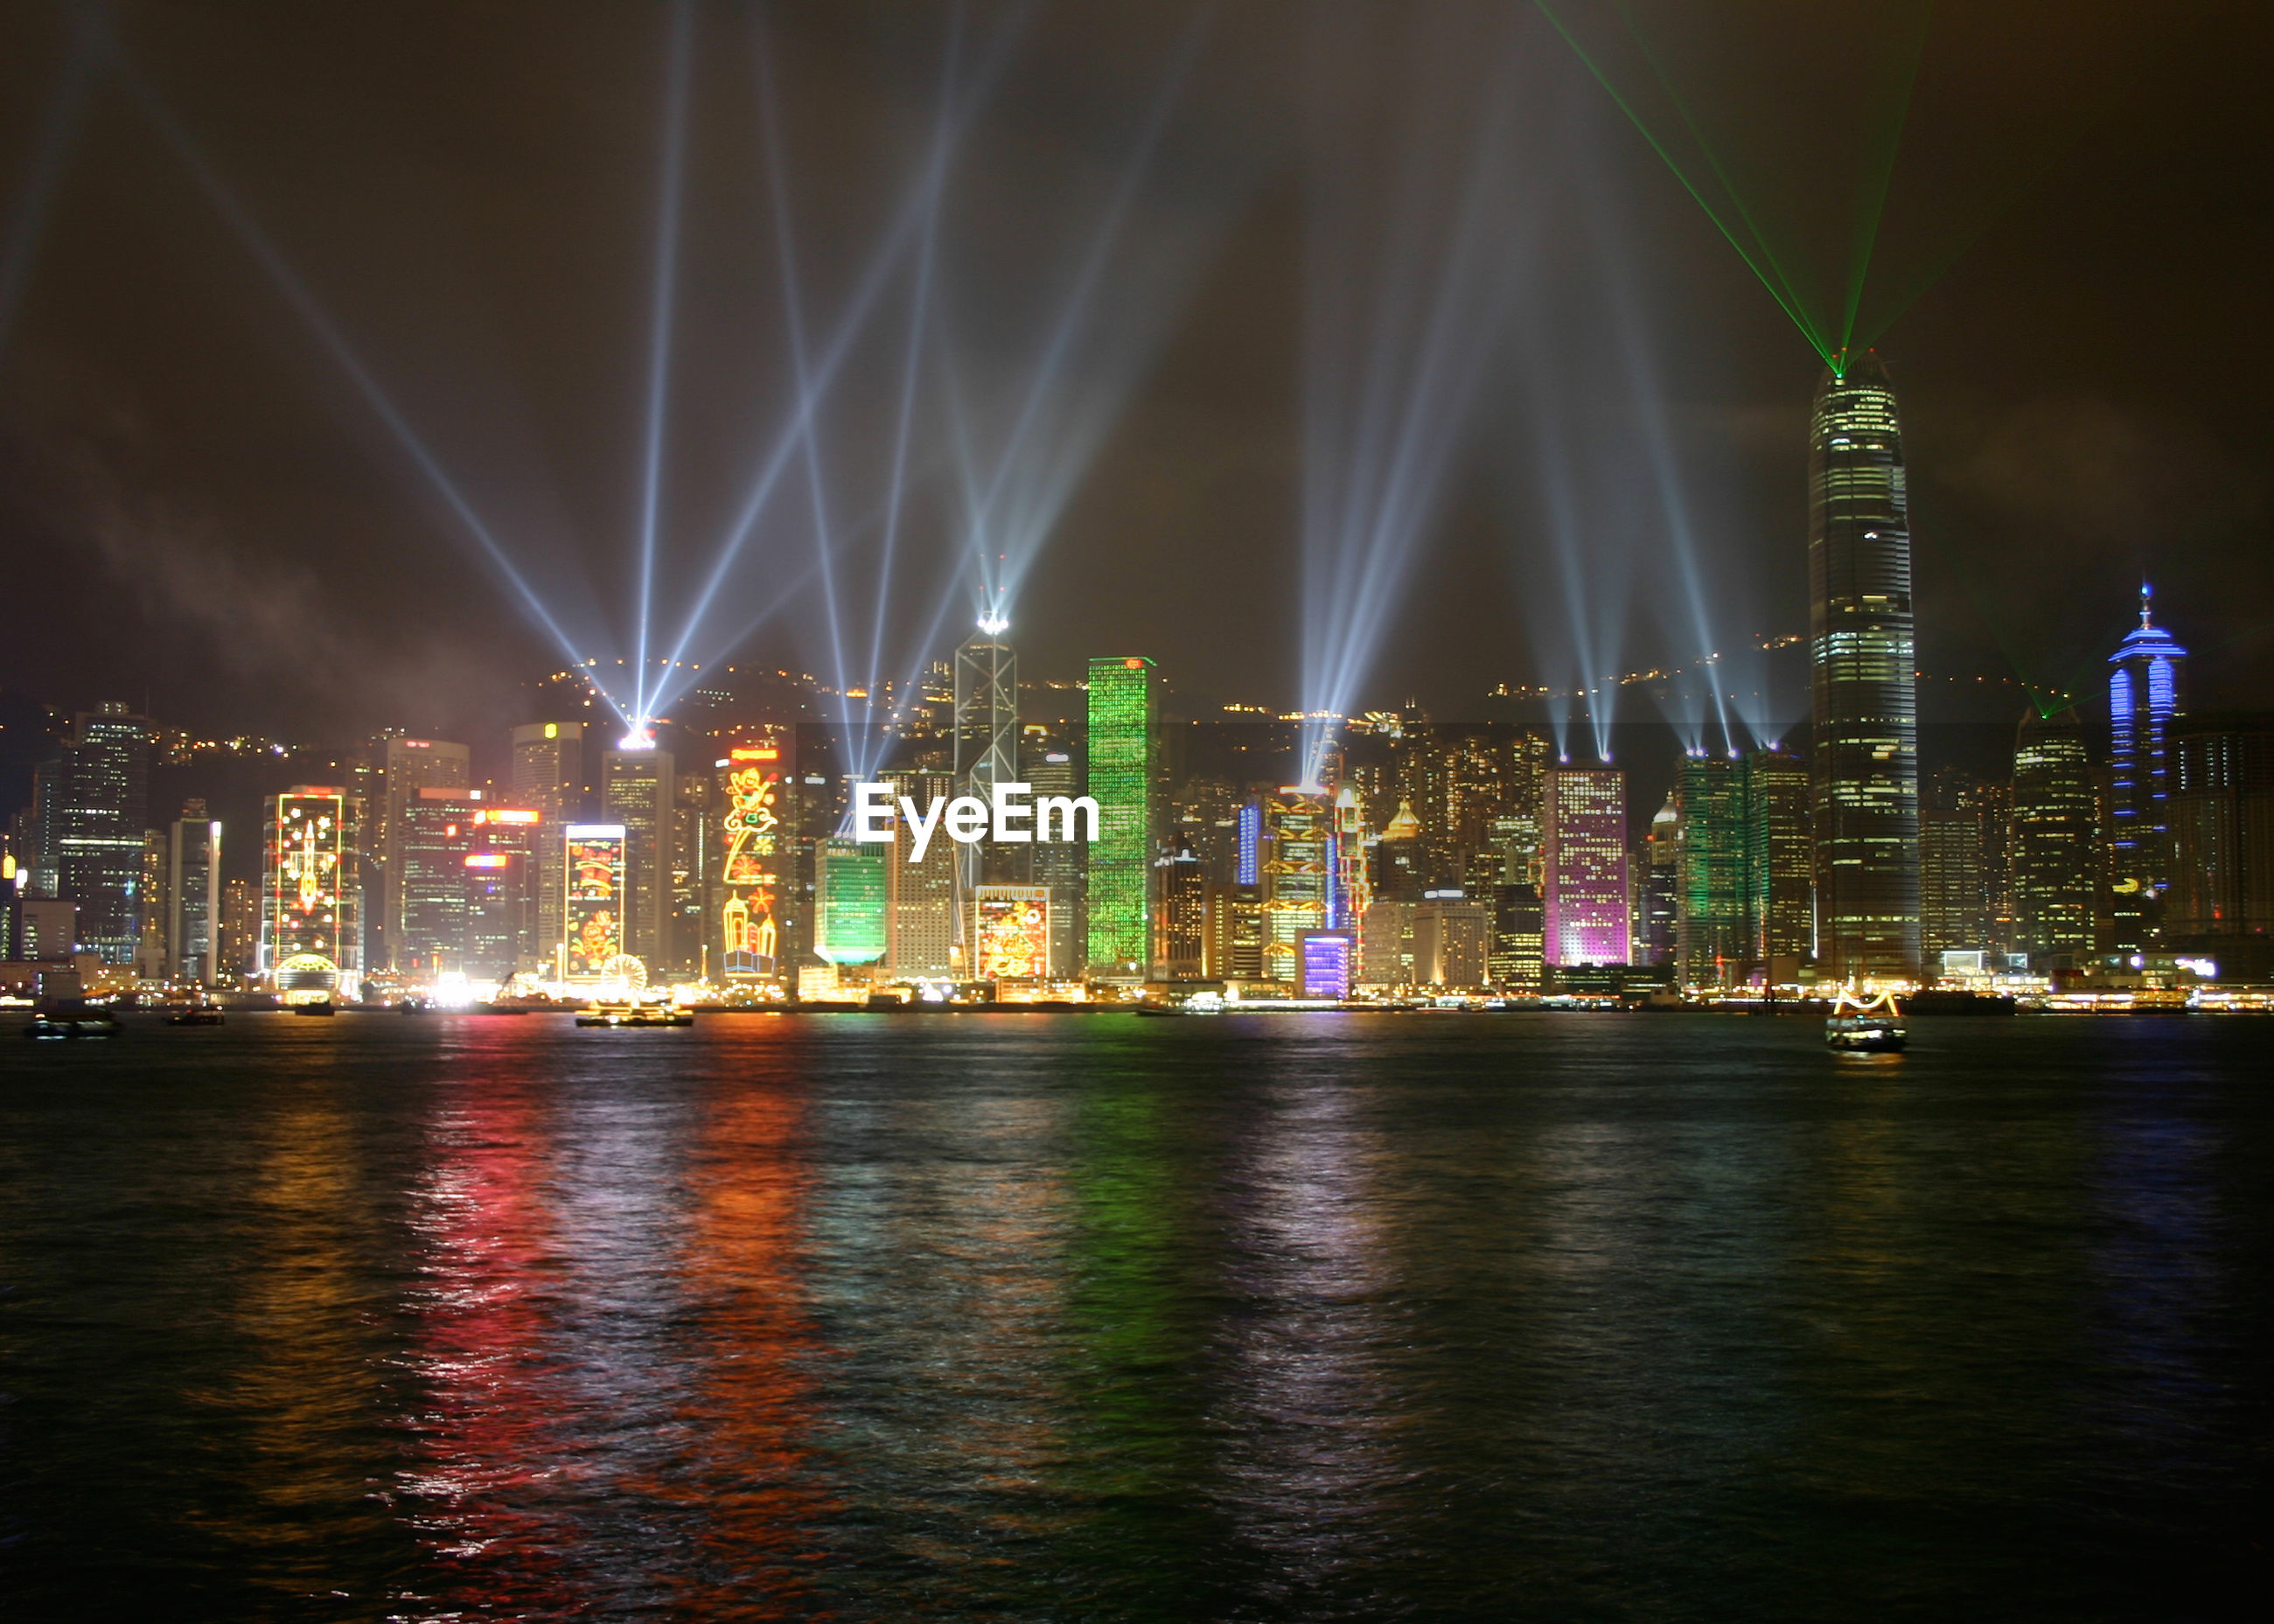 Laser light show on skyscrapers